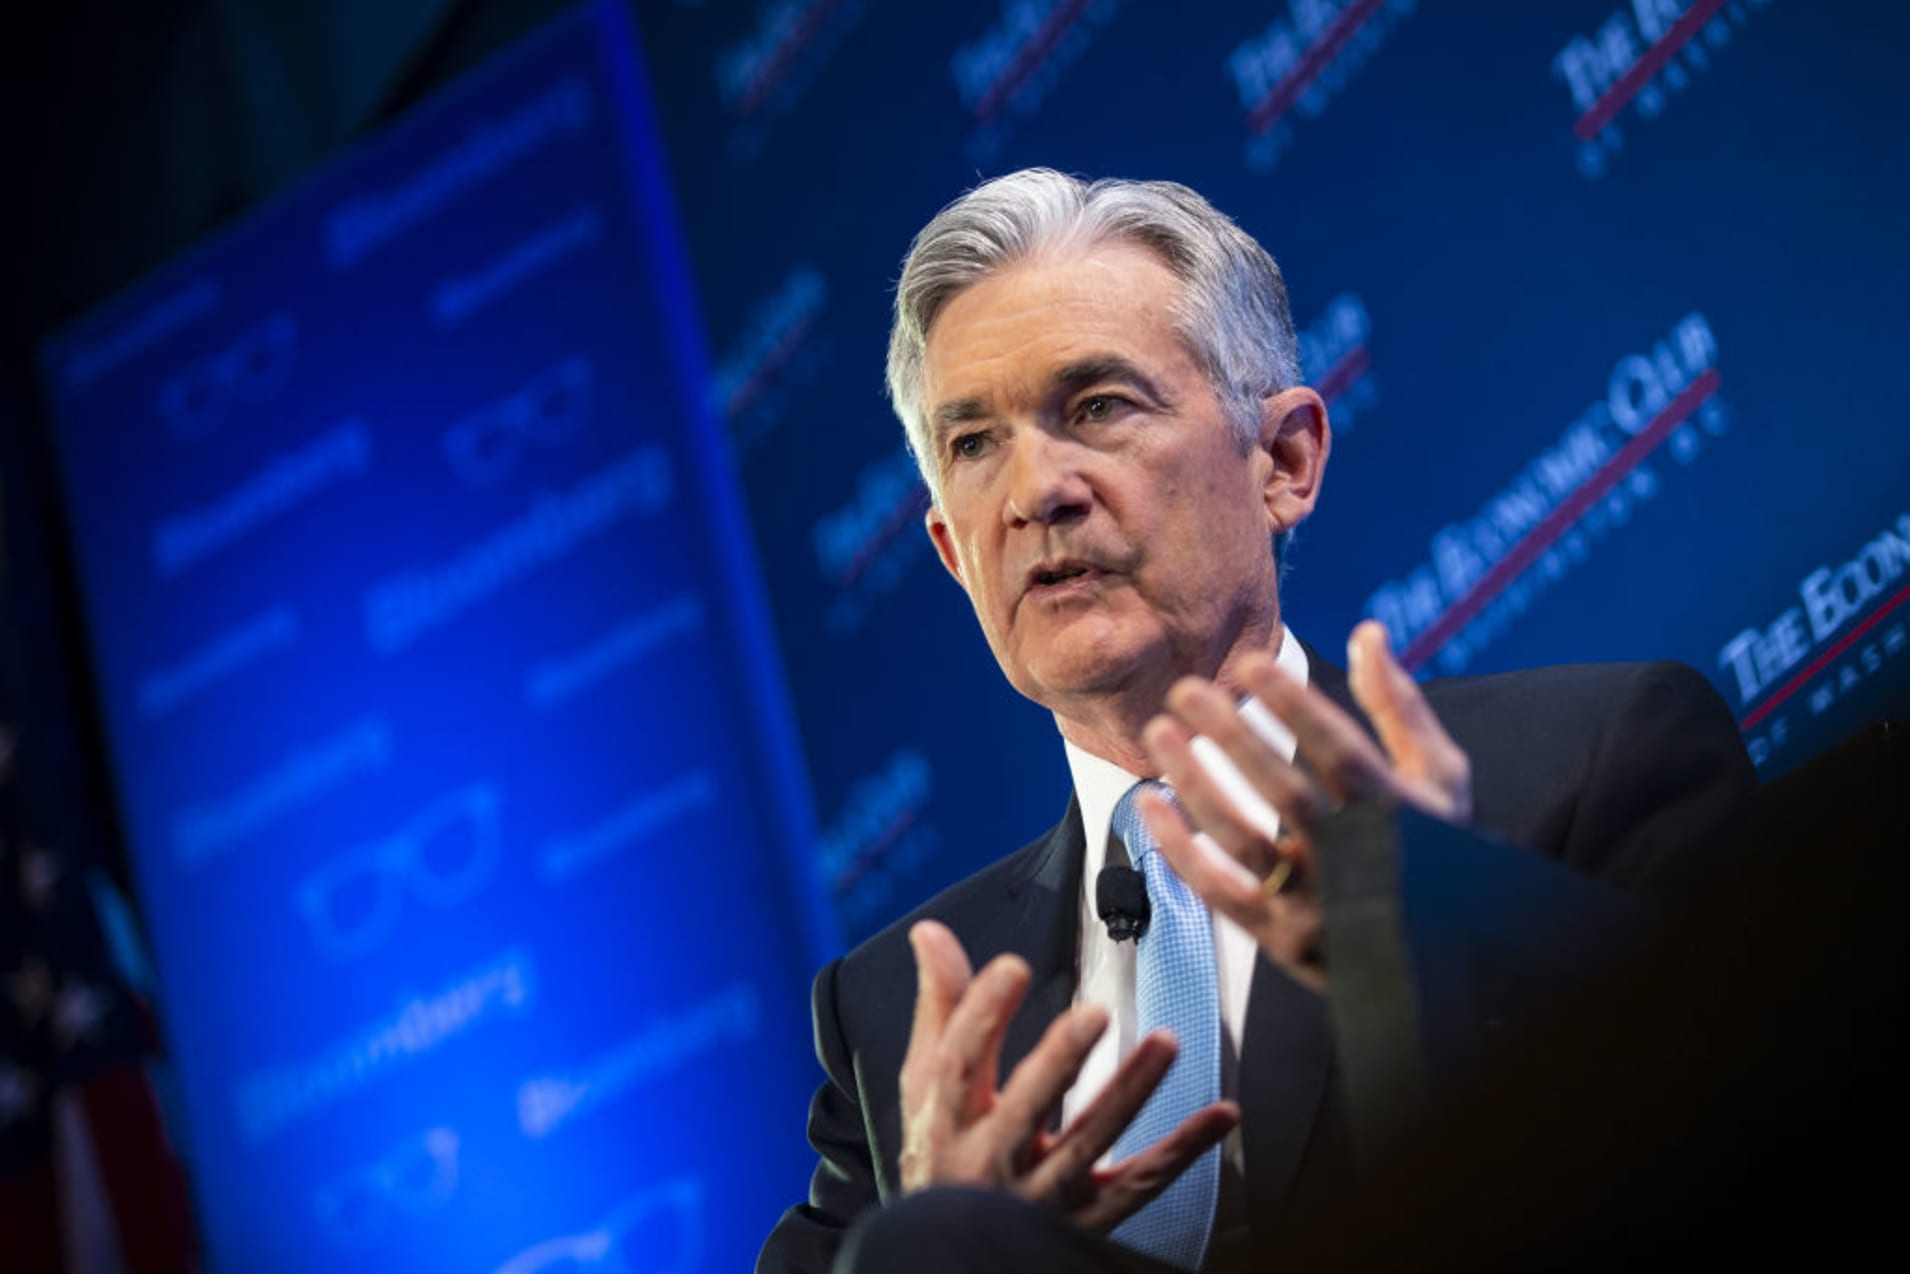 Fed sees balance sheet reduction ending, notes 'risks and uncertainties'